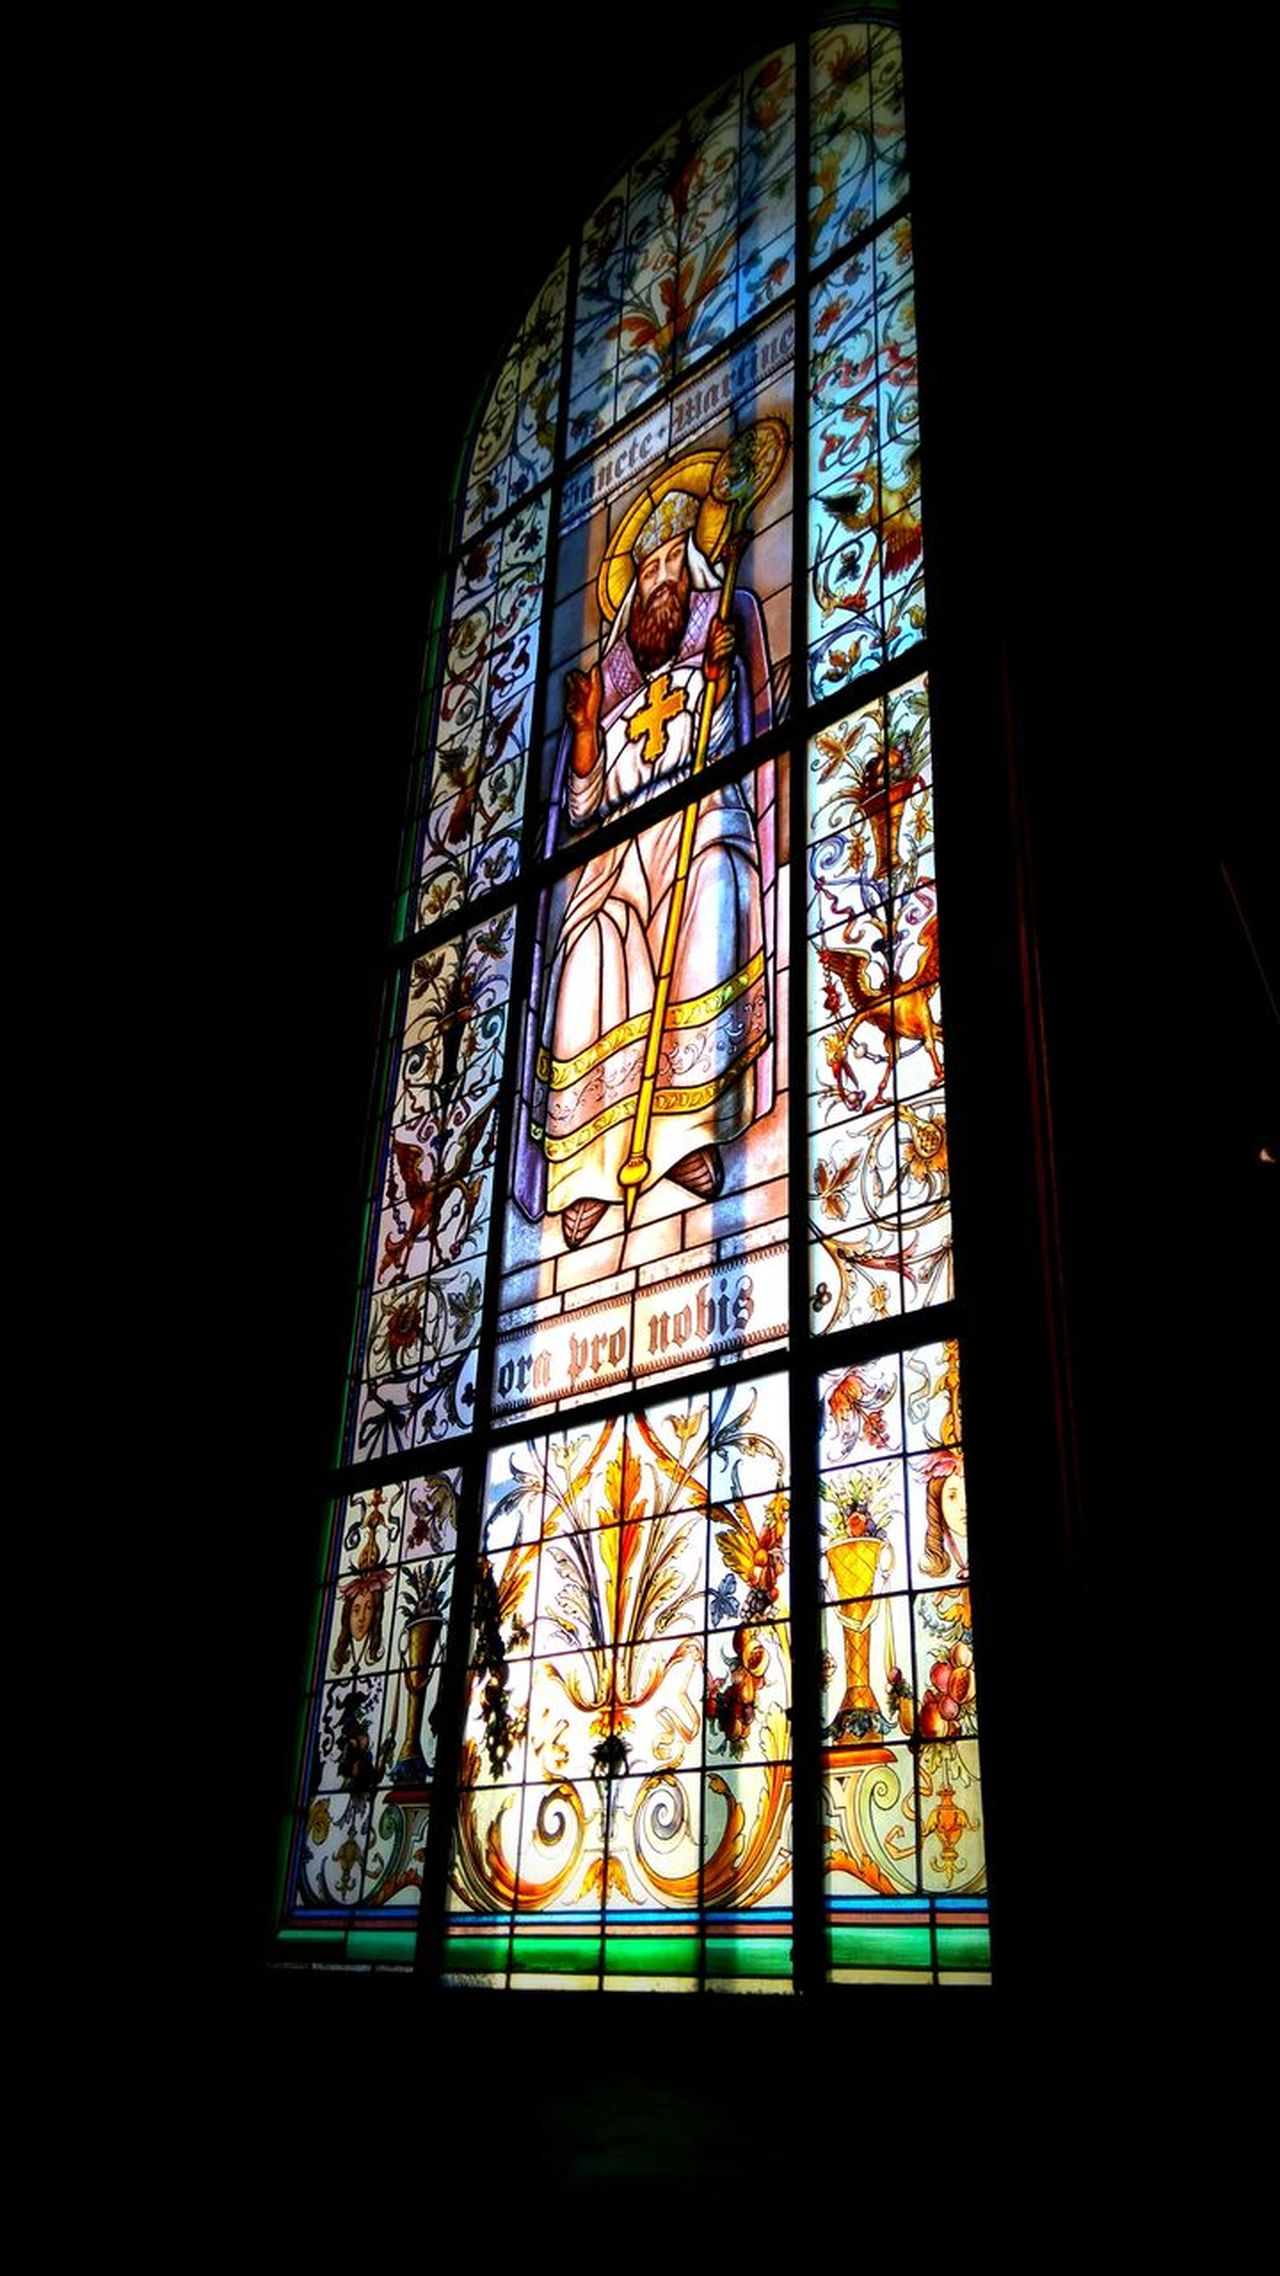 Made by Sony Xperia M4 Aqua Book Books Church Explore Light Paint Painting Paintings Paints Point Of View Szombathely Temple Walk Wall Walls Window Windows